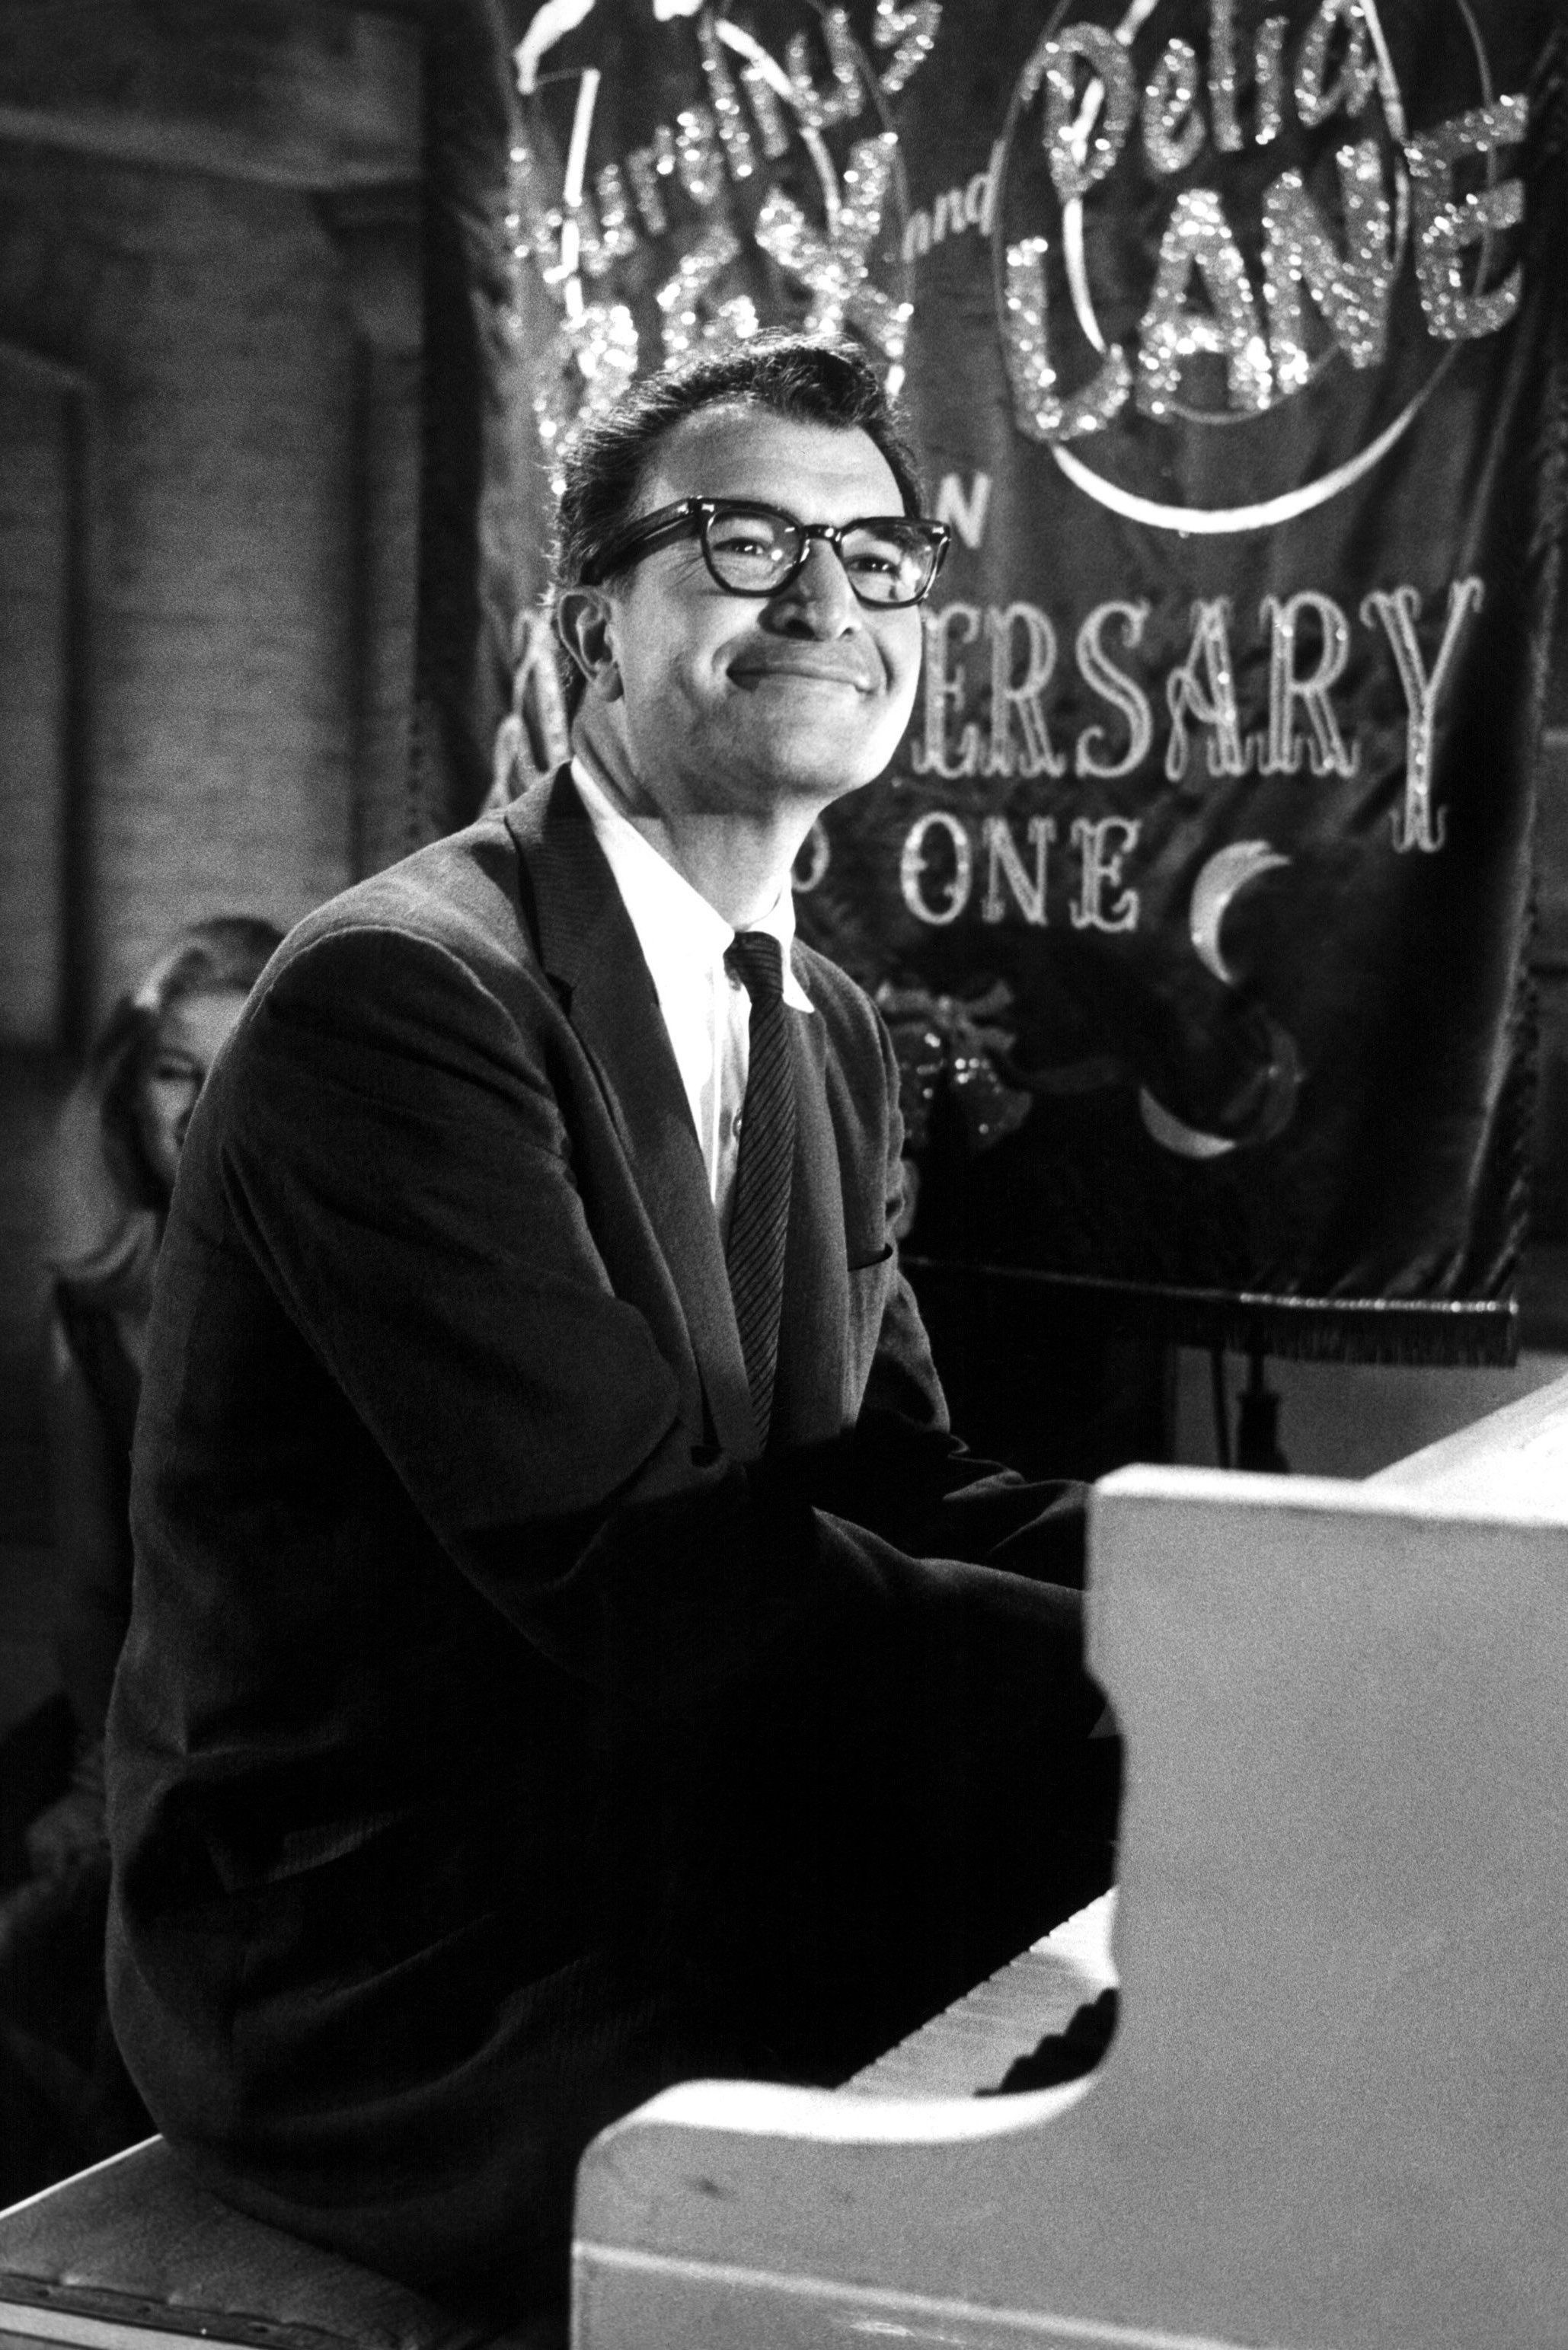 Mandatory Credit: Photo by ITV/Shutterstock (790382hb) 'All Night Long' - Dave Brubeck GTV Archive